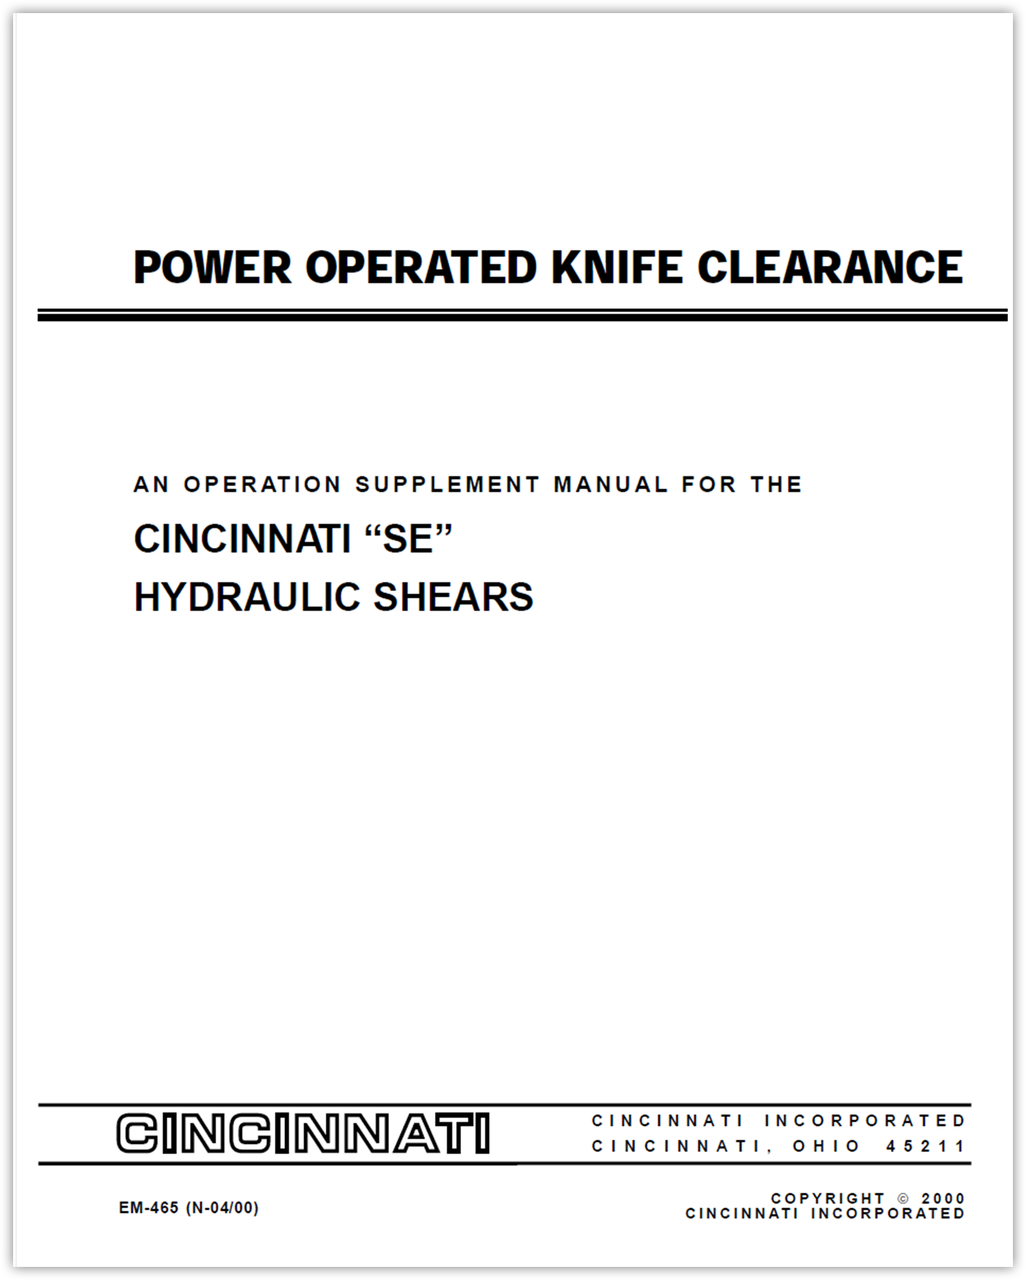 EM-465 (N-04-00) Power Operated Knife Clearance - An Operation Supplement Manual for the SE Hydraulic Shears